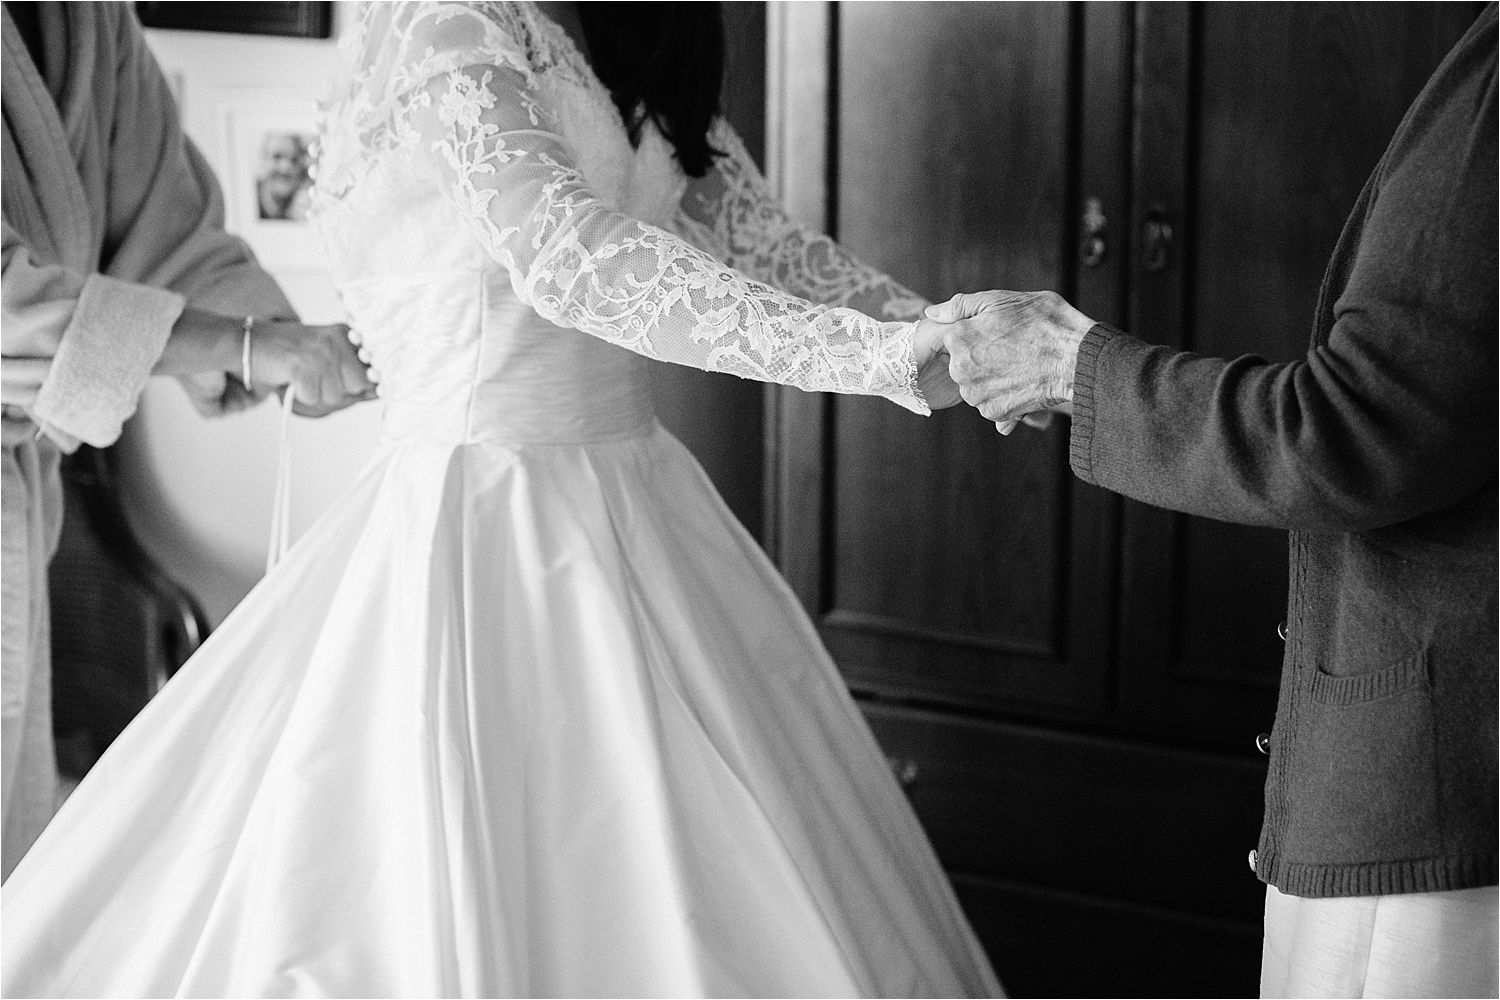 Bride and her grandmother holding hands as bride is buttoned into her wedding dress in Cheshire